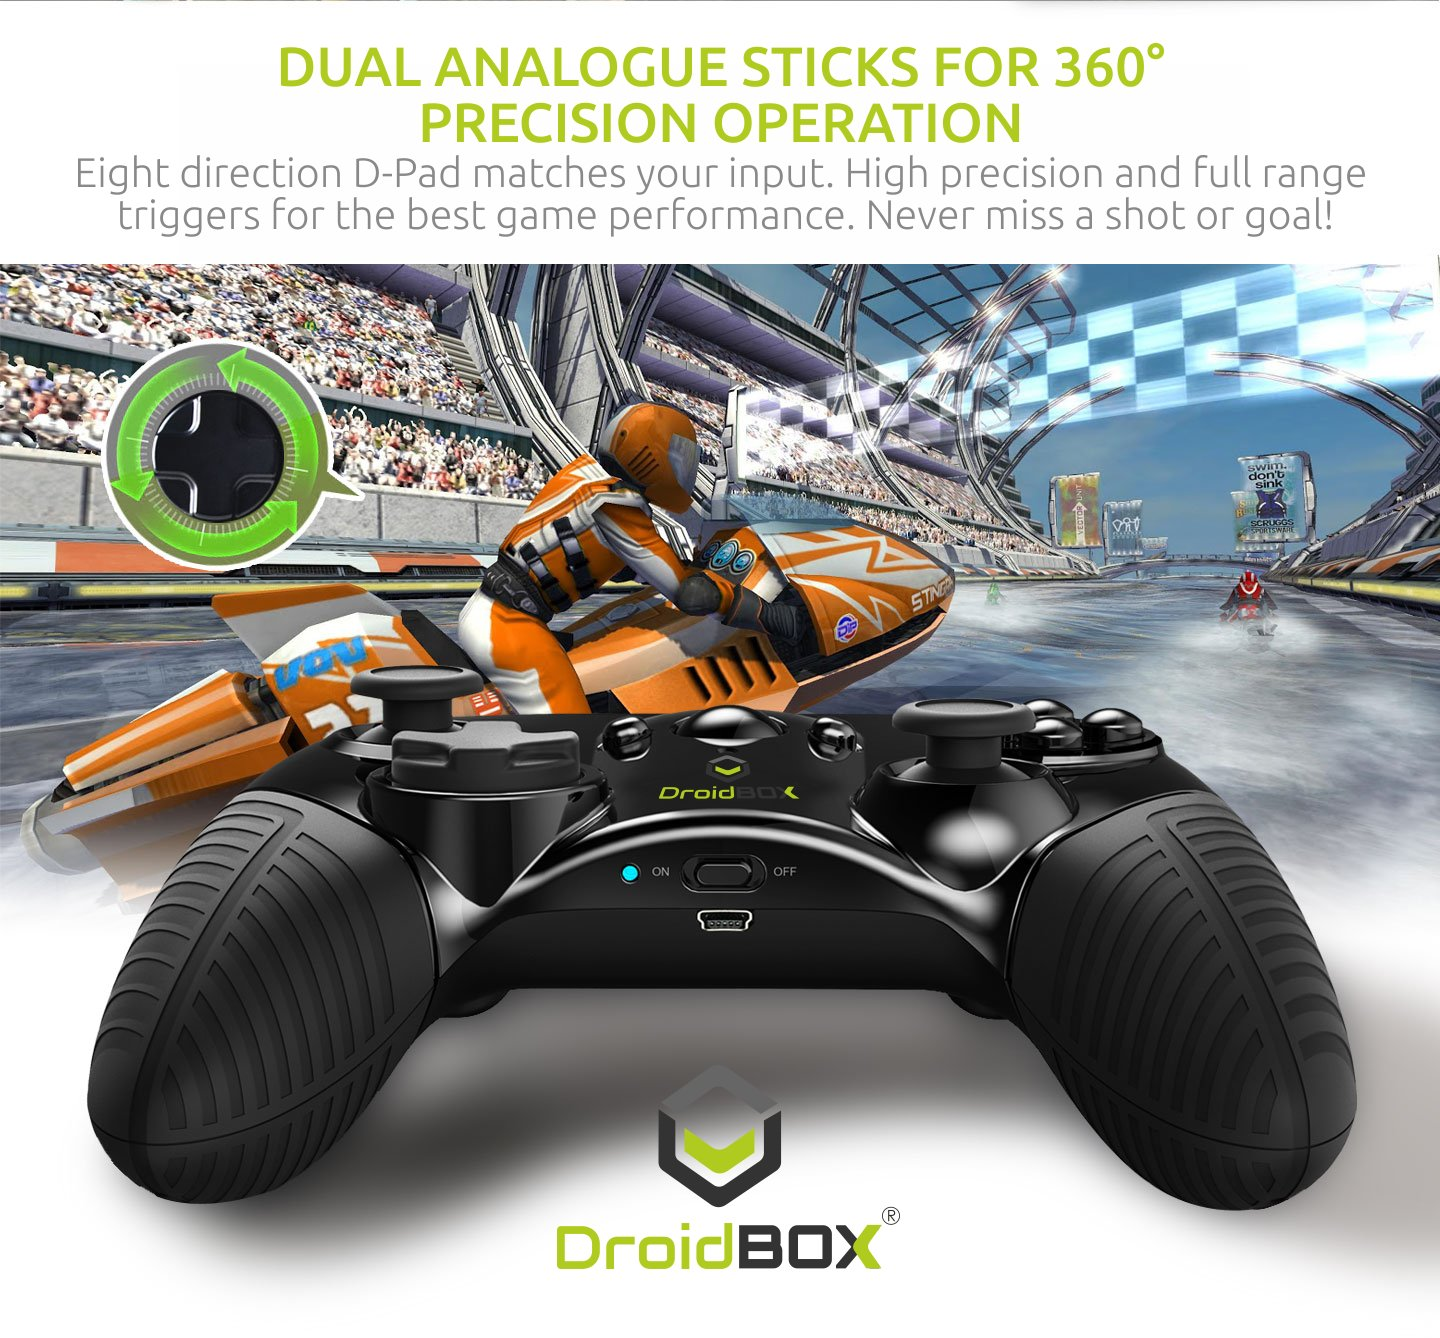 DroidBOX Play Gamepad - Bluetooth 3.0, batería de ion de litio recargable para Android y PC. Juegos y Emuladores con Dual Sticks, D-pad y 12 botones: ...